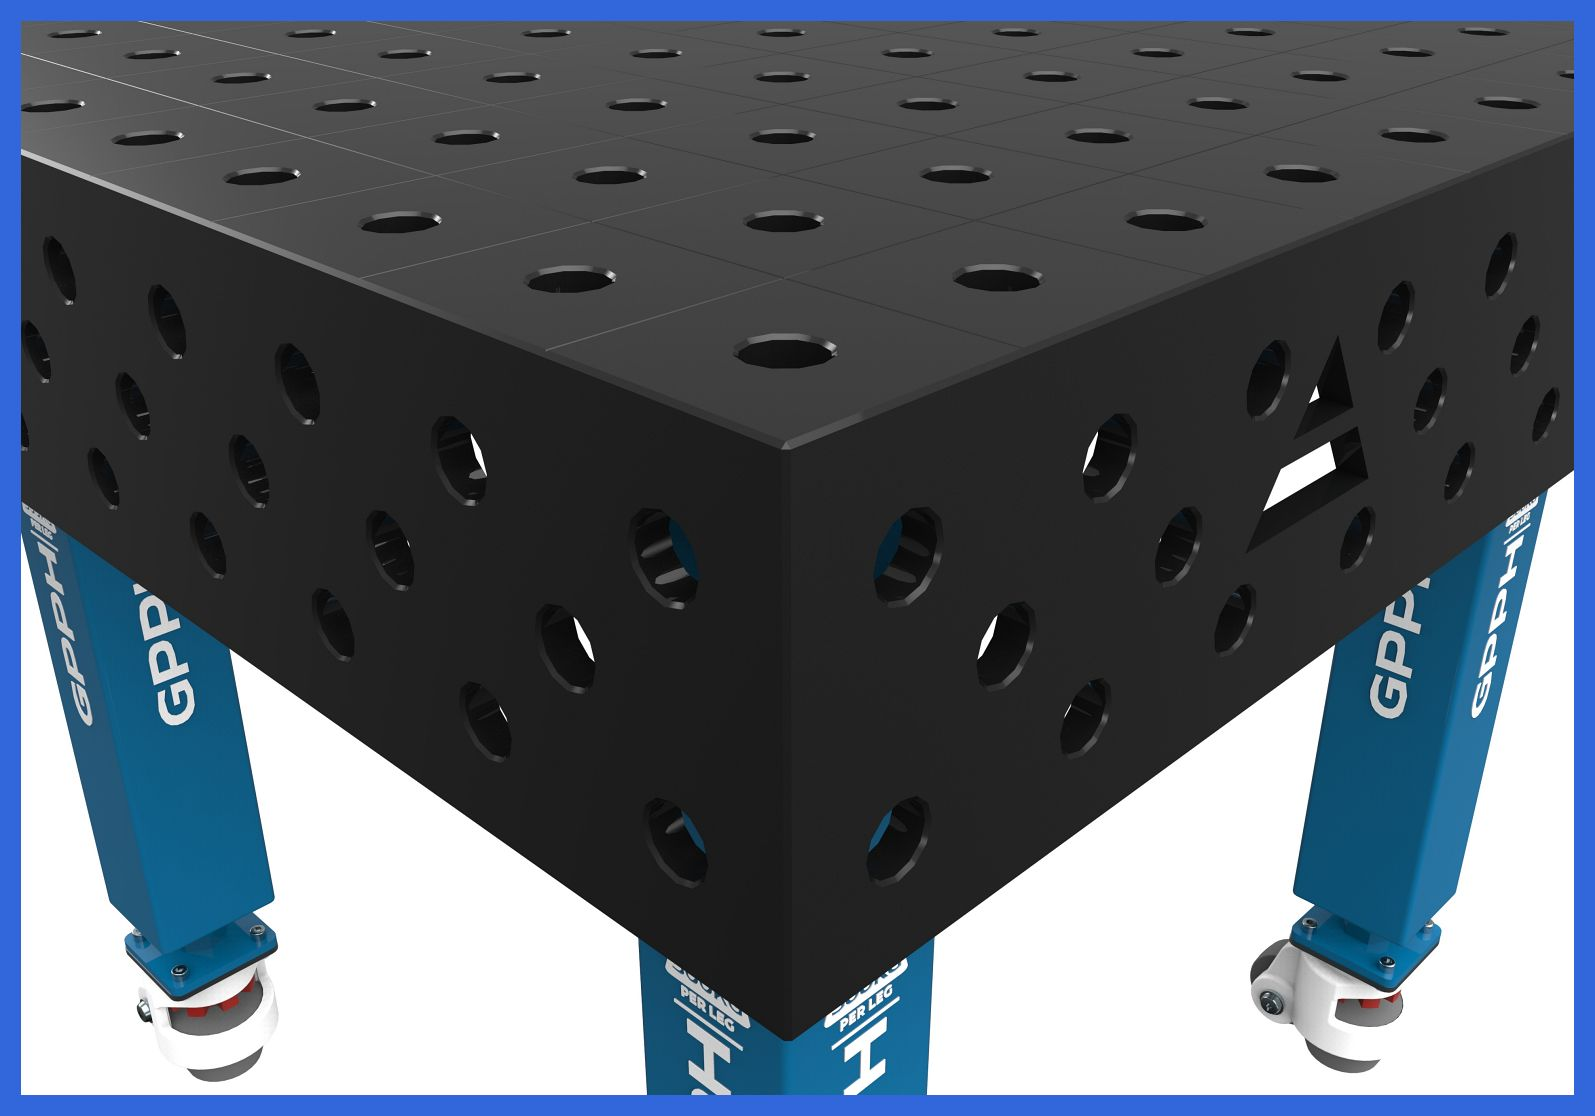 Three grids of holes on the four sides of the table.